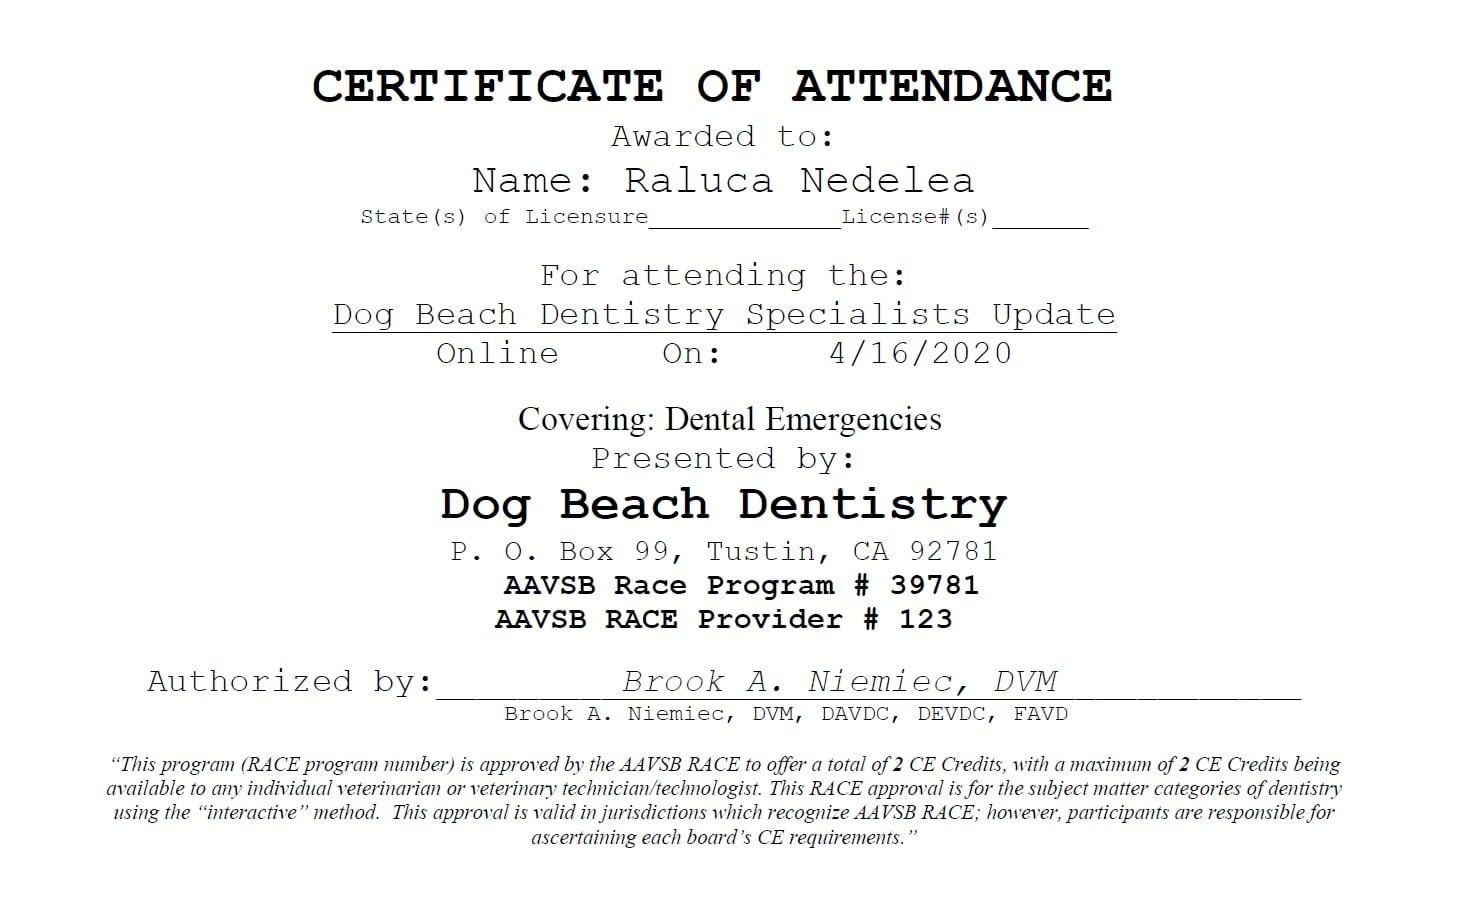 Dog Beach Dentistry Specialists Update 2020